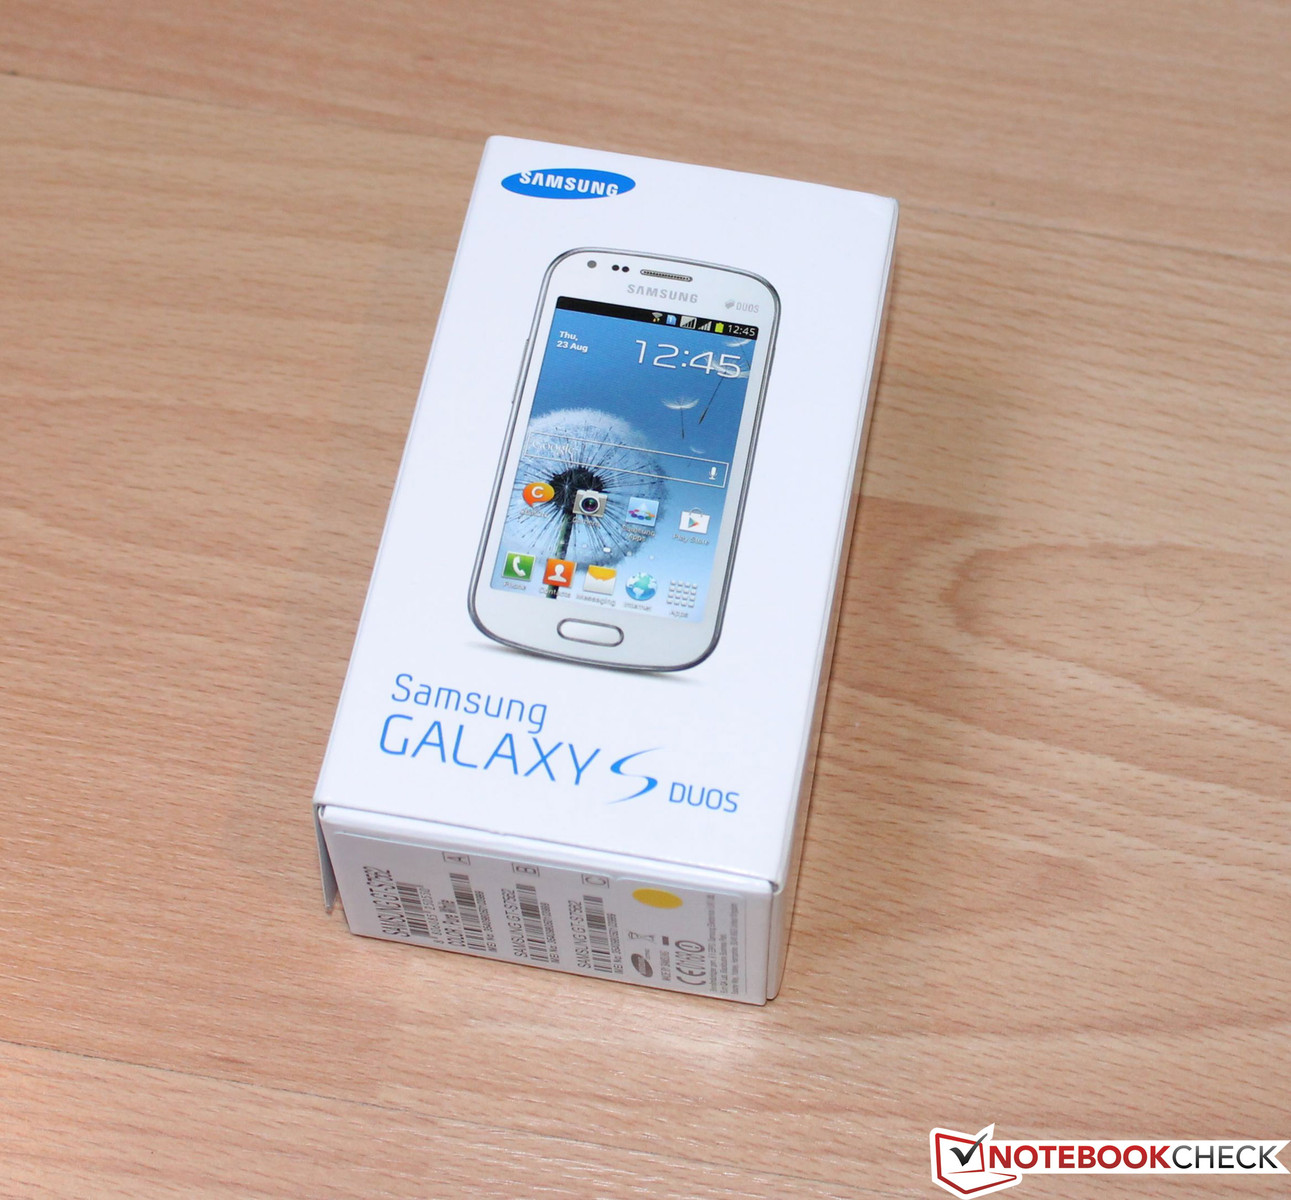 Review Samsung Galaxy S DUOS GT-S7562 Smartphone - NotebookCheck.net